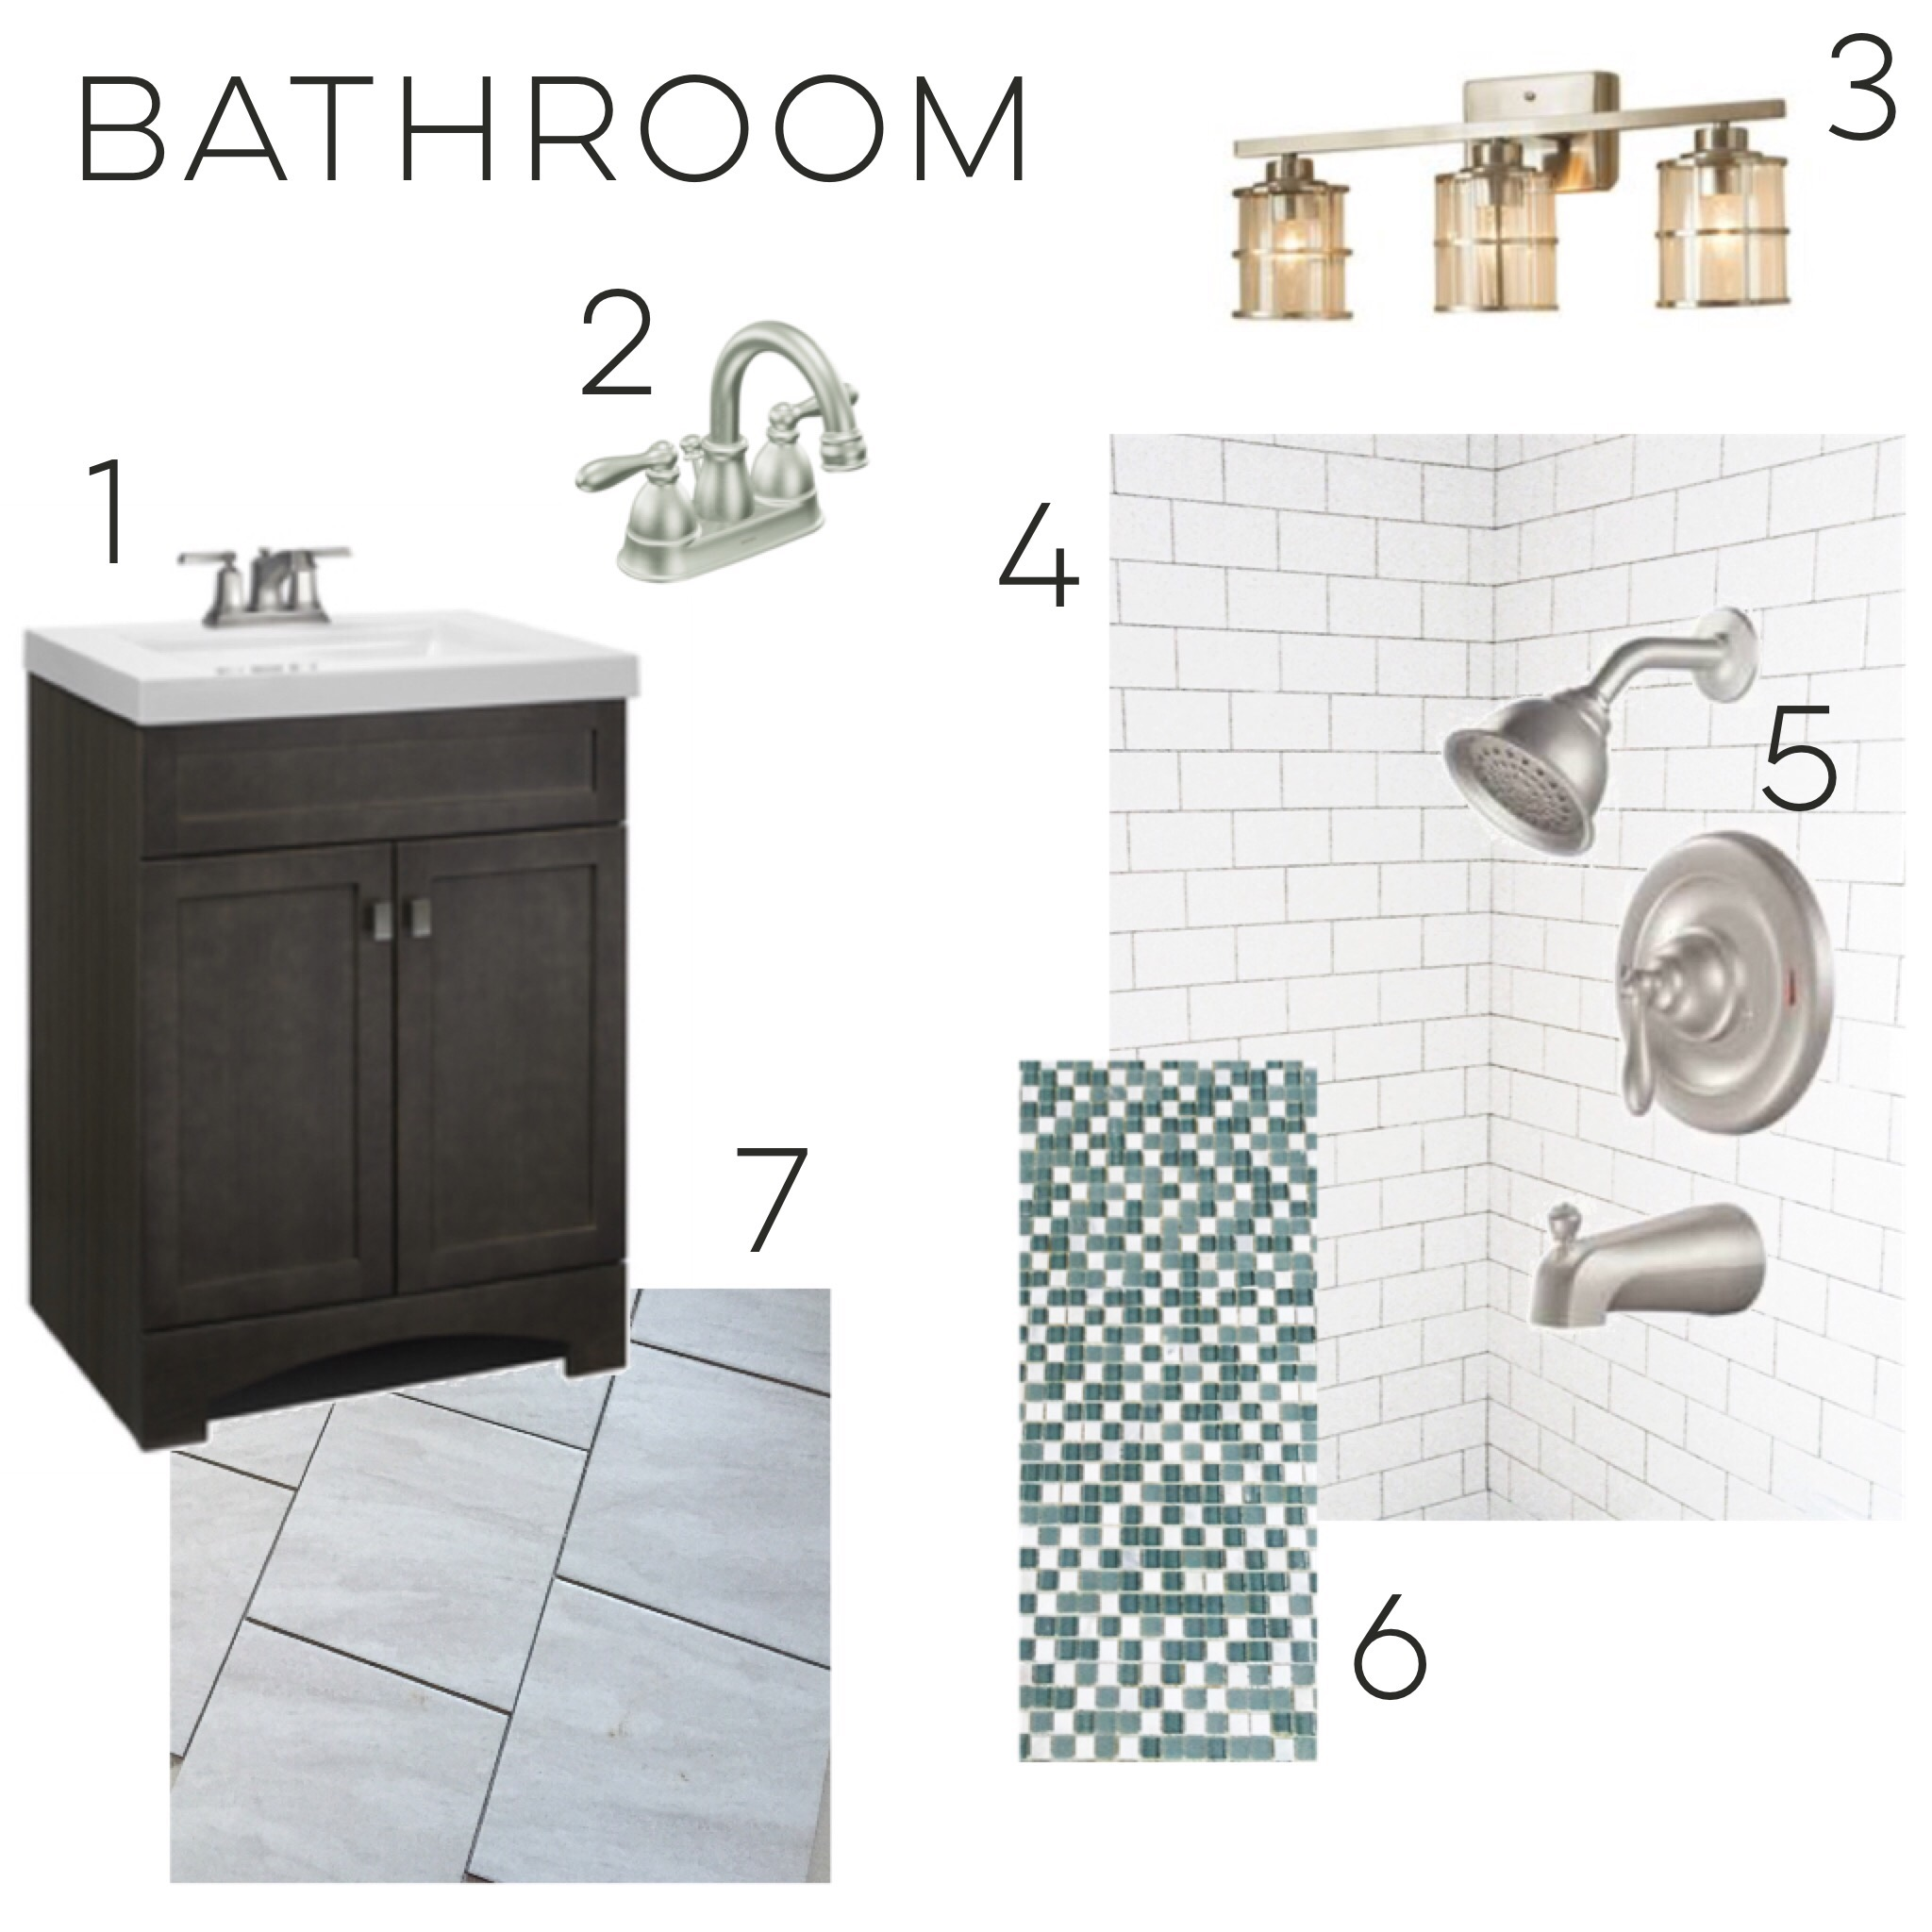 Style Selections Drayden Grey Integral Single Sink Bathroom Vanity With  Cultured Marble Top, Find It Here For $199. The Space Is Really Tight, ...